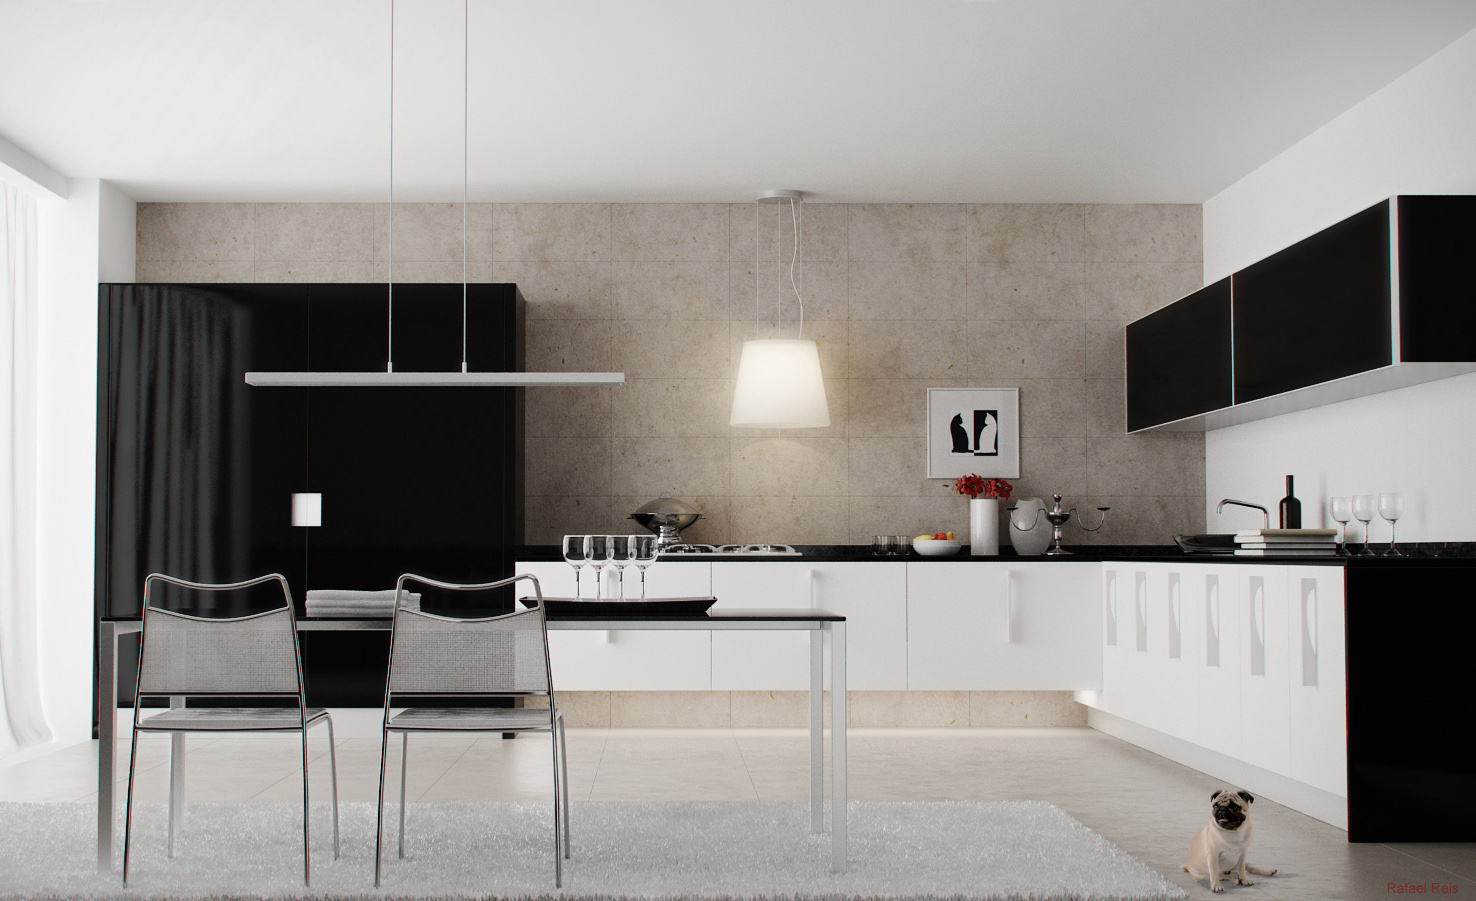 Black white kitchen diner interior design ideas for Black and white modern kitchen designs